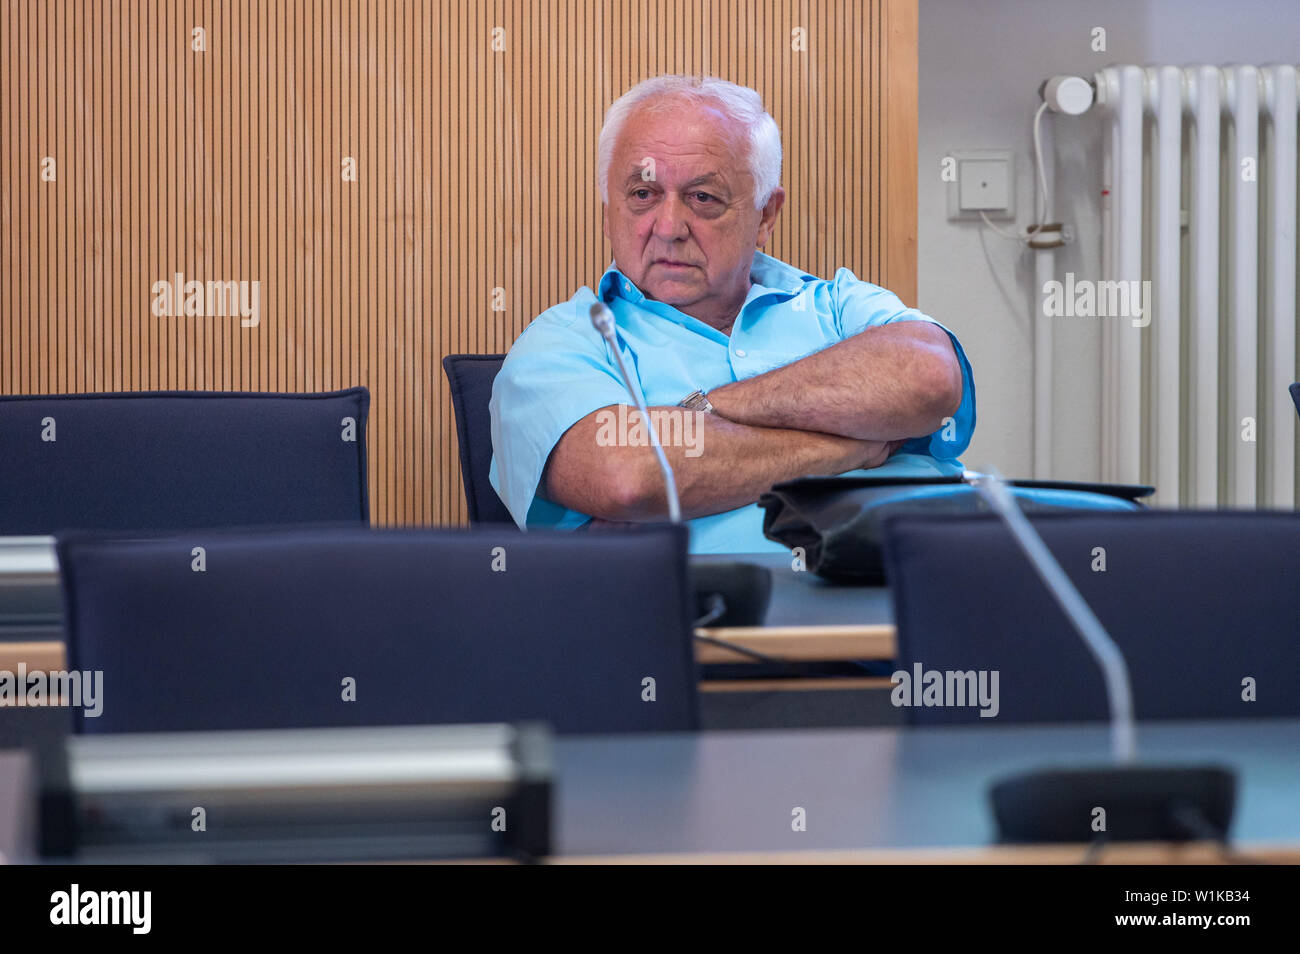 03 July 2019, Bavaria, Regensburg: Norbert Hartl, former leader of the SPD parliamentary group in the city council, sits in the courtroom of the regional court. The court acquitted Hartl because it found no misconduct in the sense of aiding and abetting Wolbergs. Photo: Armin Weigel/dpa Stock Photo